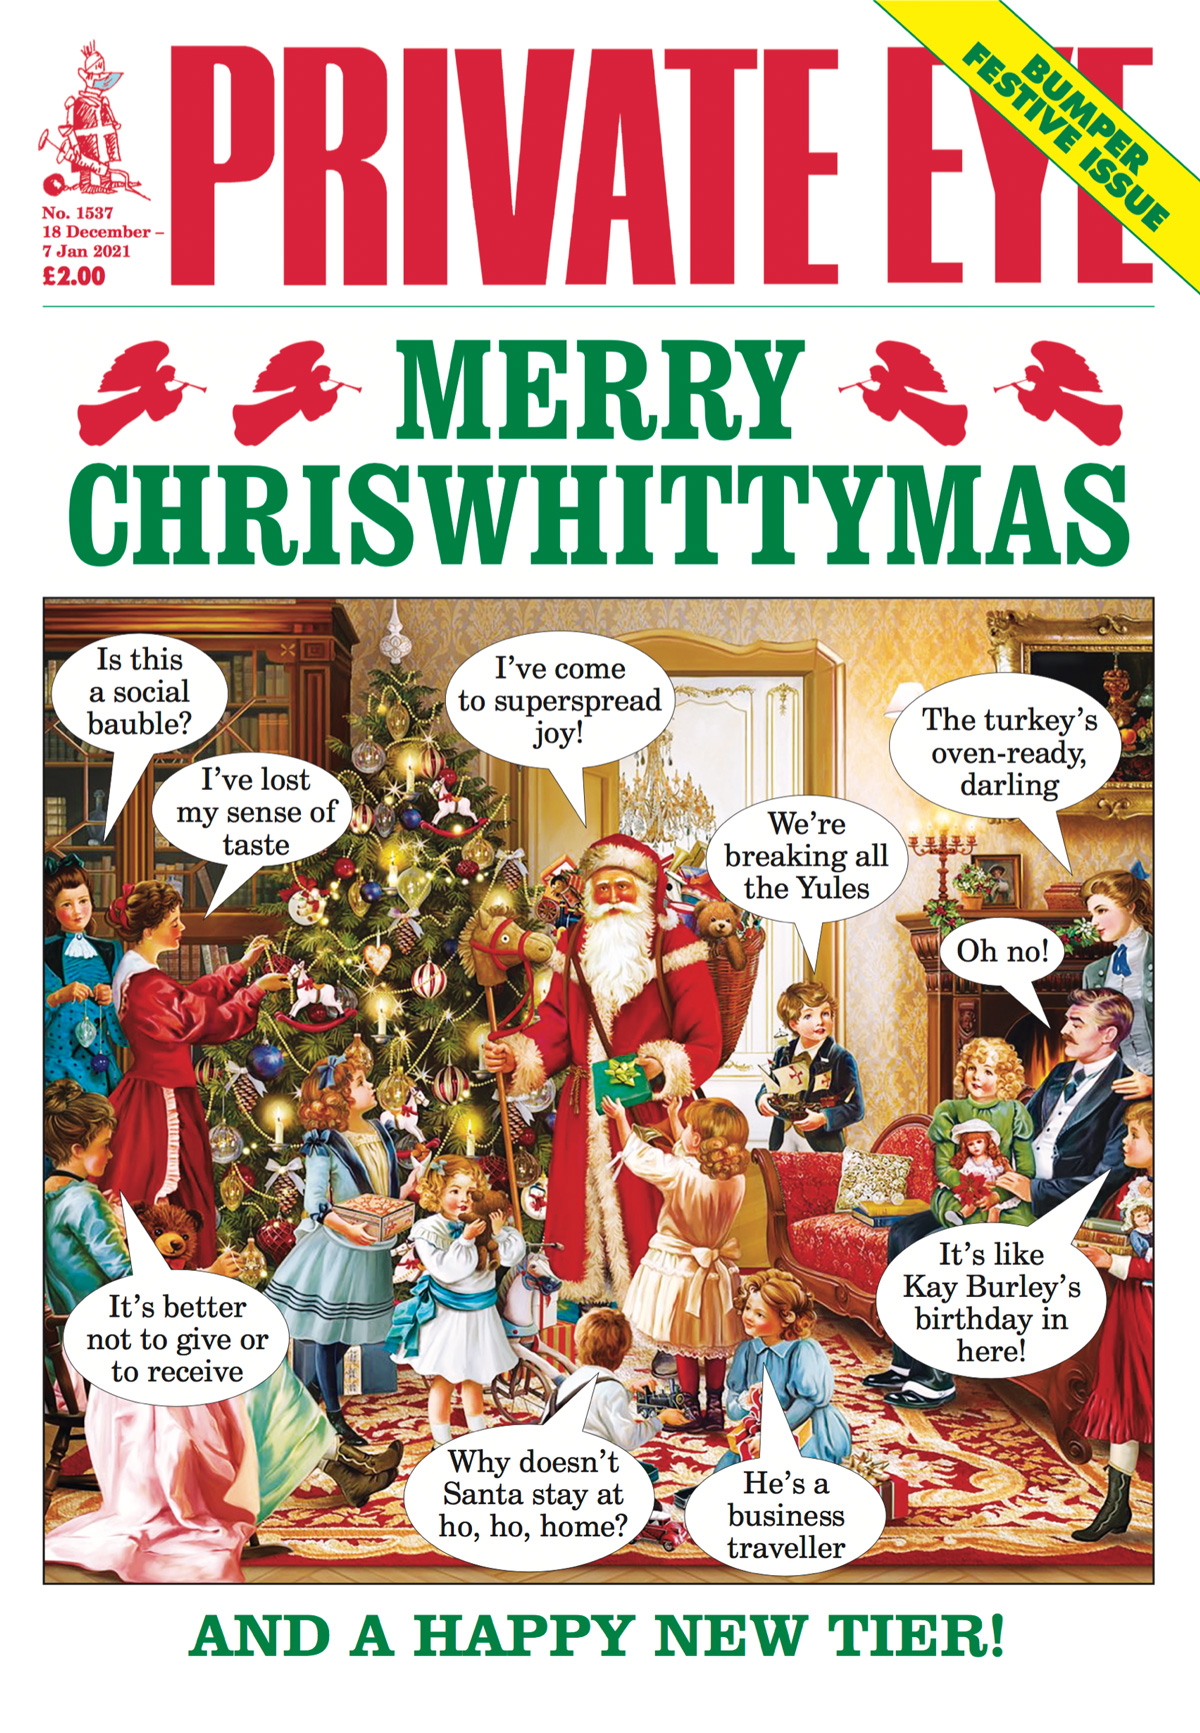 Christmas Chris Whitty Covid Kay Burley